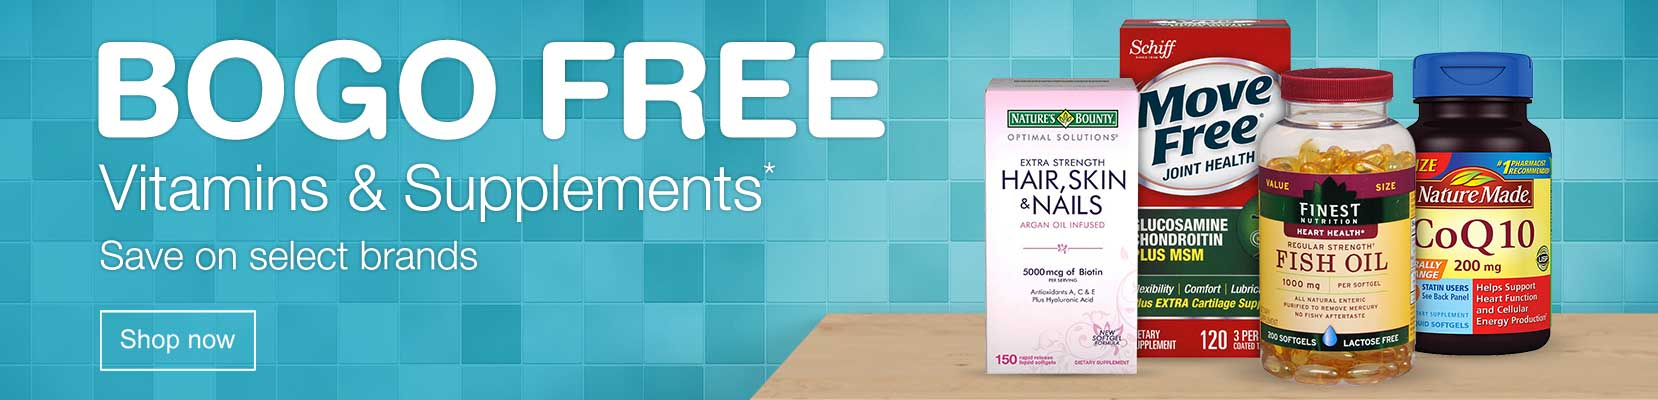 BOGO FREE Vitamins and Supplements.* Save on select brands. Shop now.